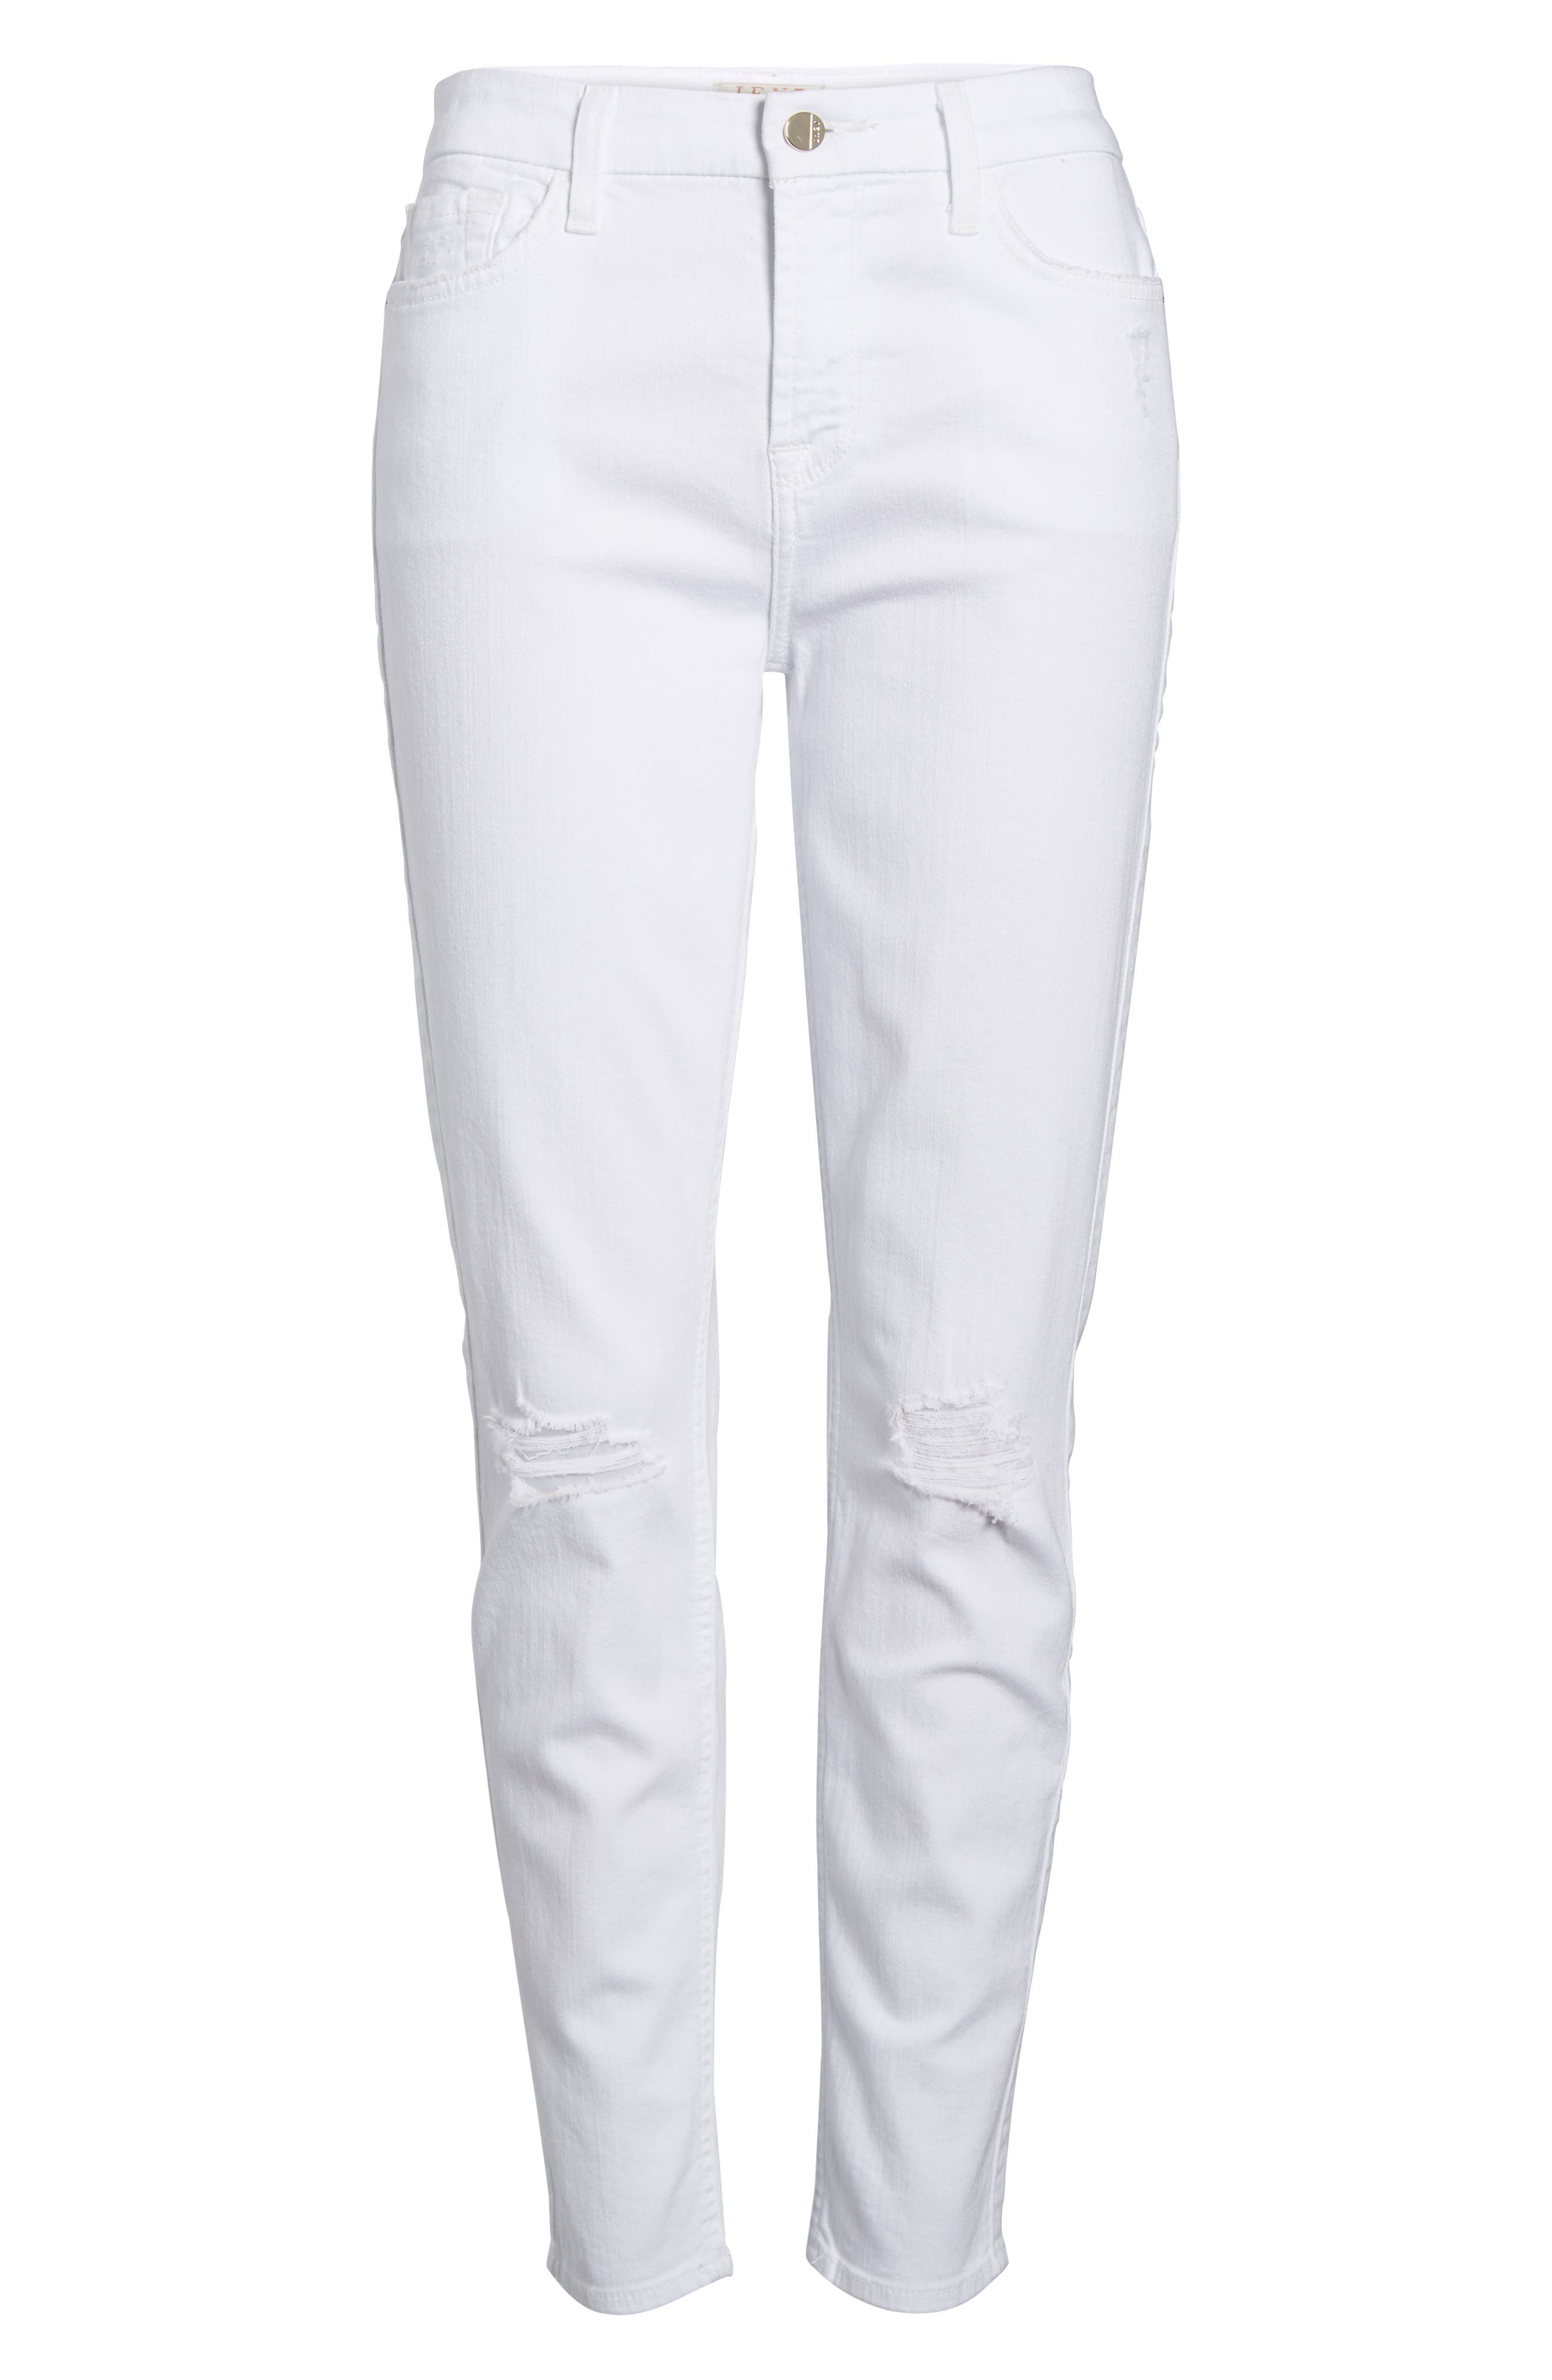 JEN7 BY 7 FOR ALL MANKIND,                             Ankle Skinny Jeans,                             Alternate thumbnail 6, color,                             WHITE 2